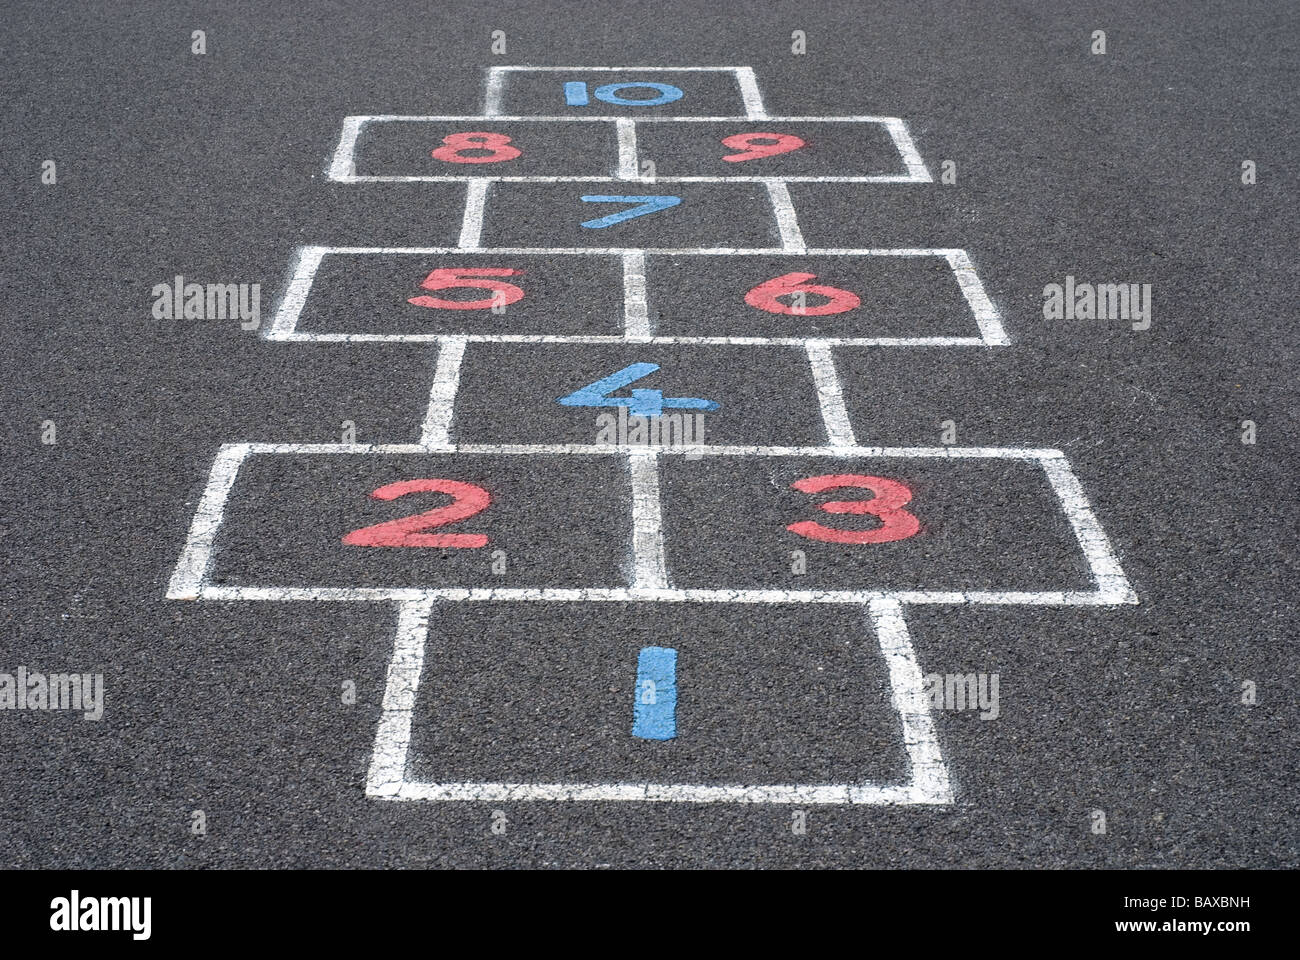 Numbers on a hopscotch grid - Stock Image